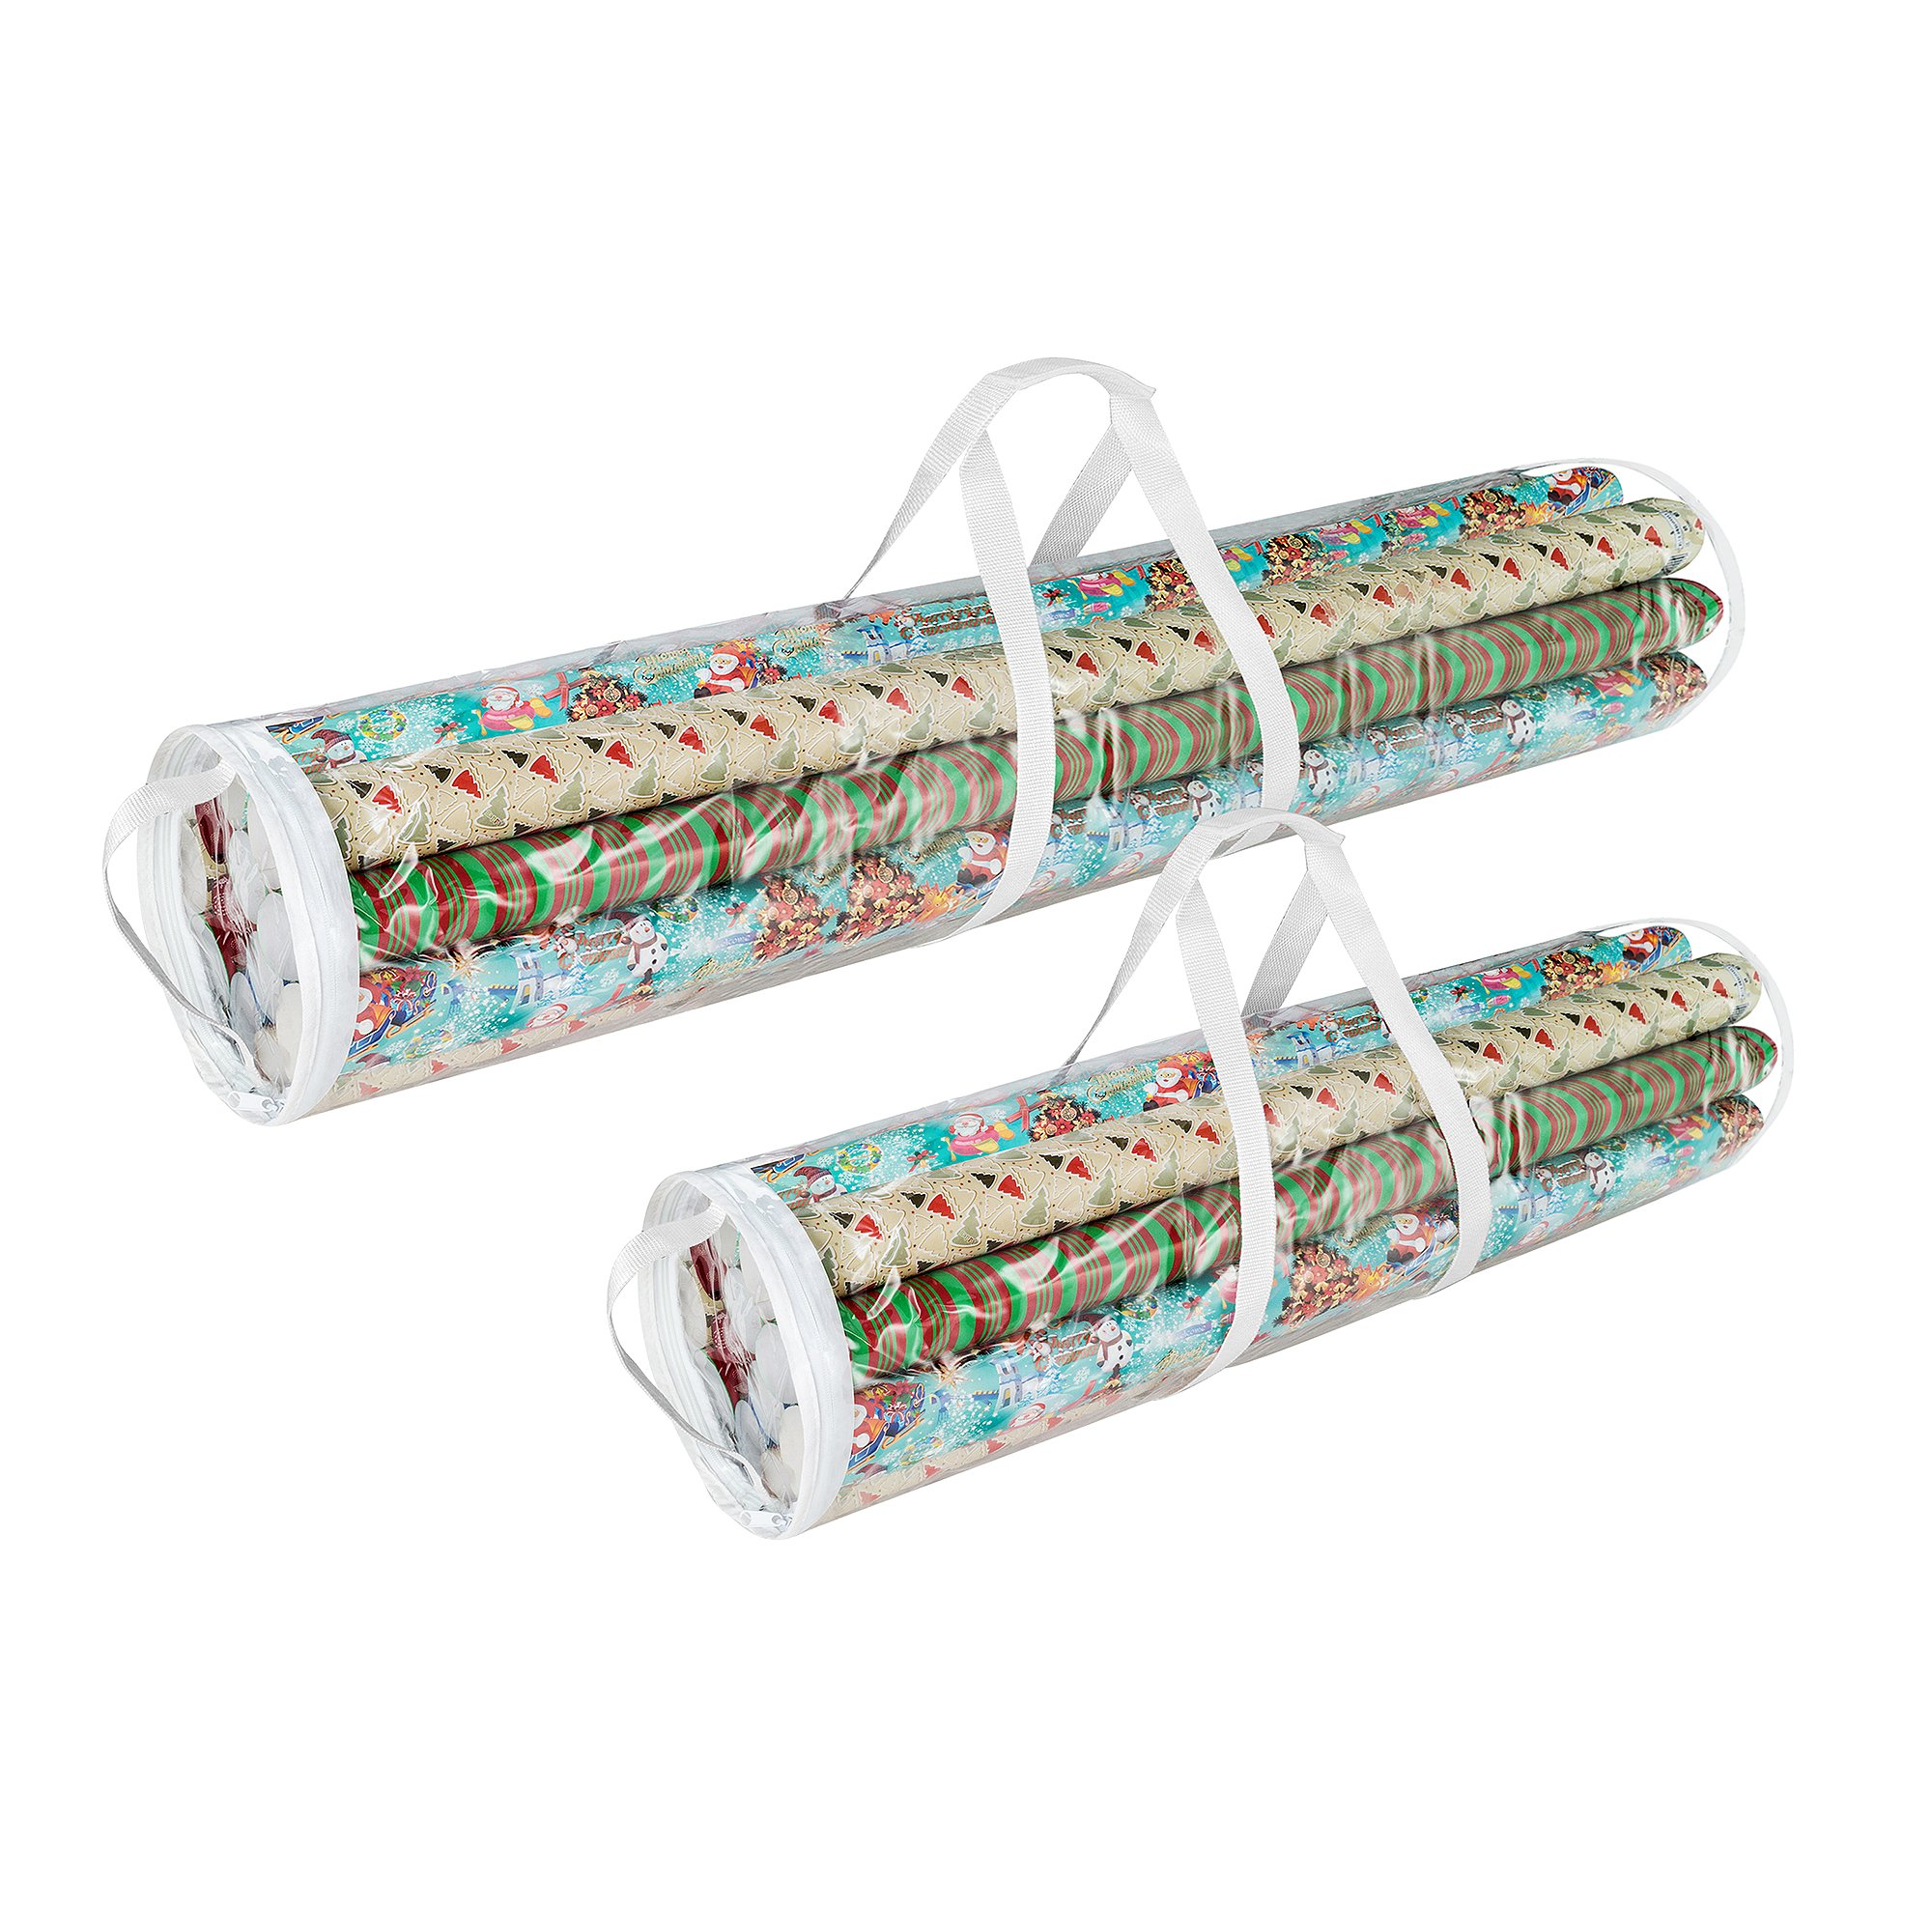 Elf Stor 798976 Christmas Birthday Holiday Storage Set of 2 | Holds 40'' & 31'' Wrapping Paper Rolls, One Bag for Each, 1 Pack Clear by Elf Stor